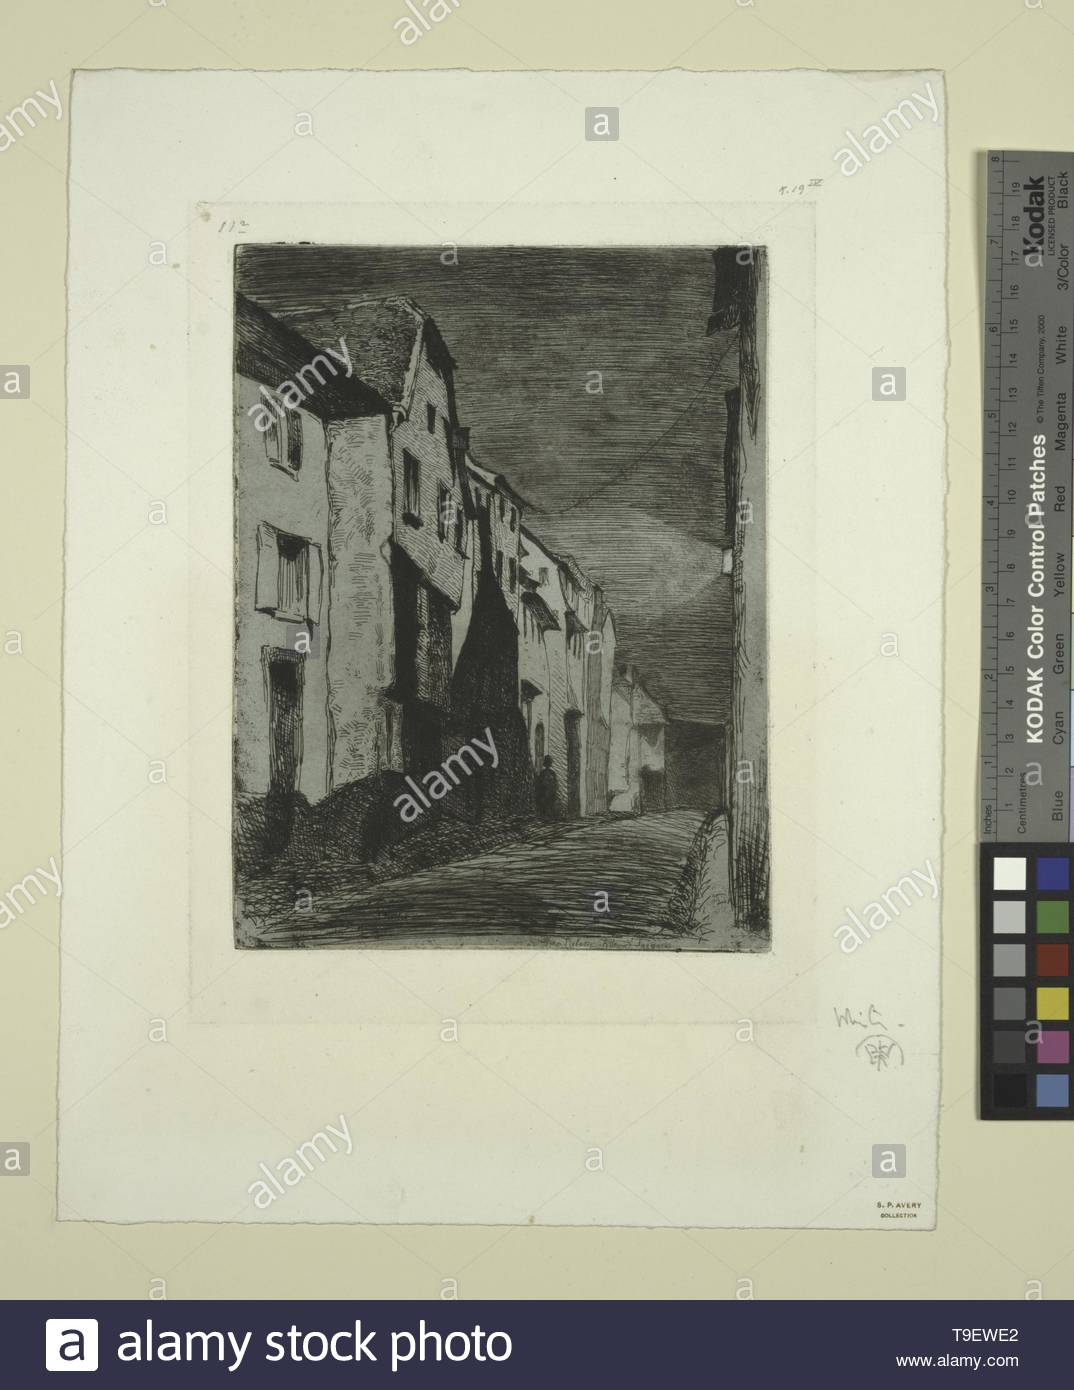 Whistler,JamesMcNeill(1834-1903)-Street at Saverne [2] - Stock Image